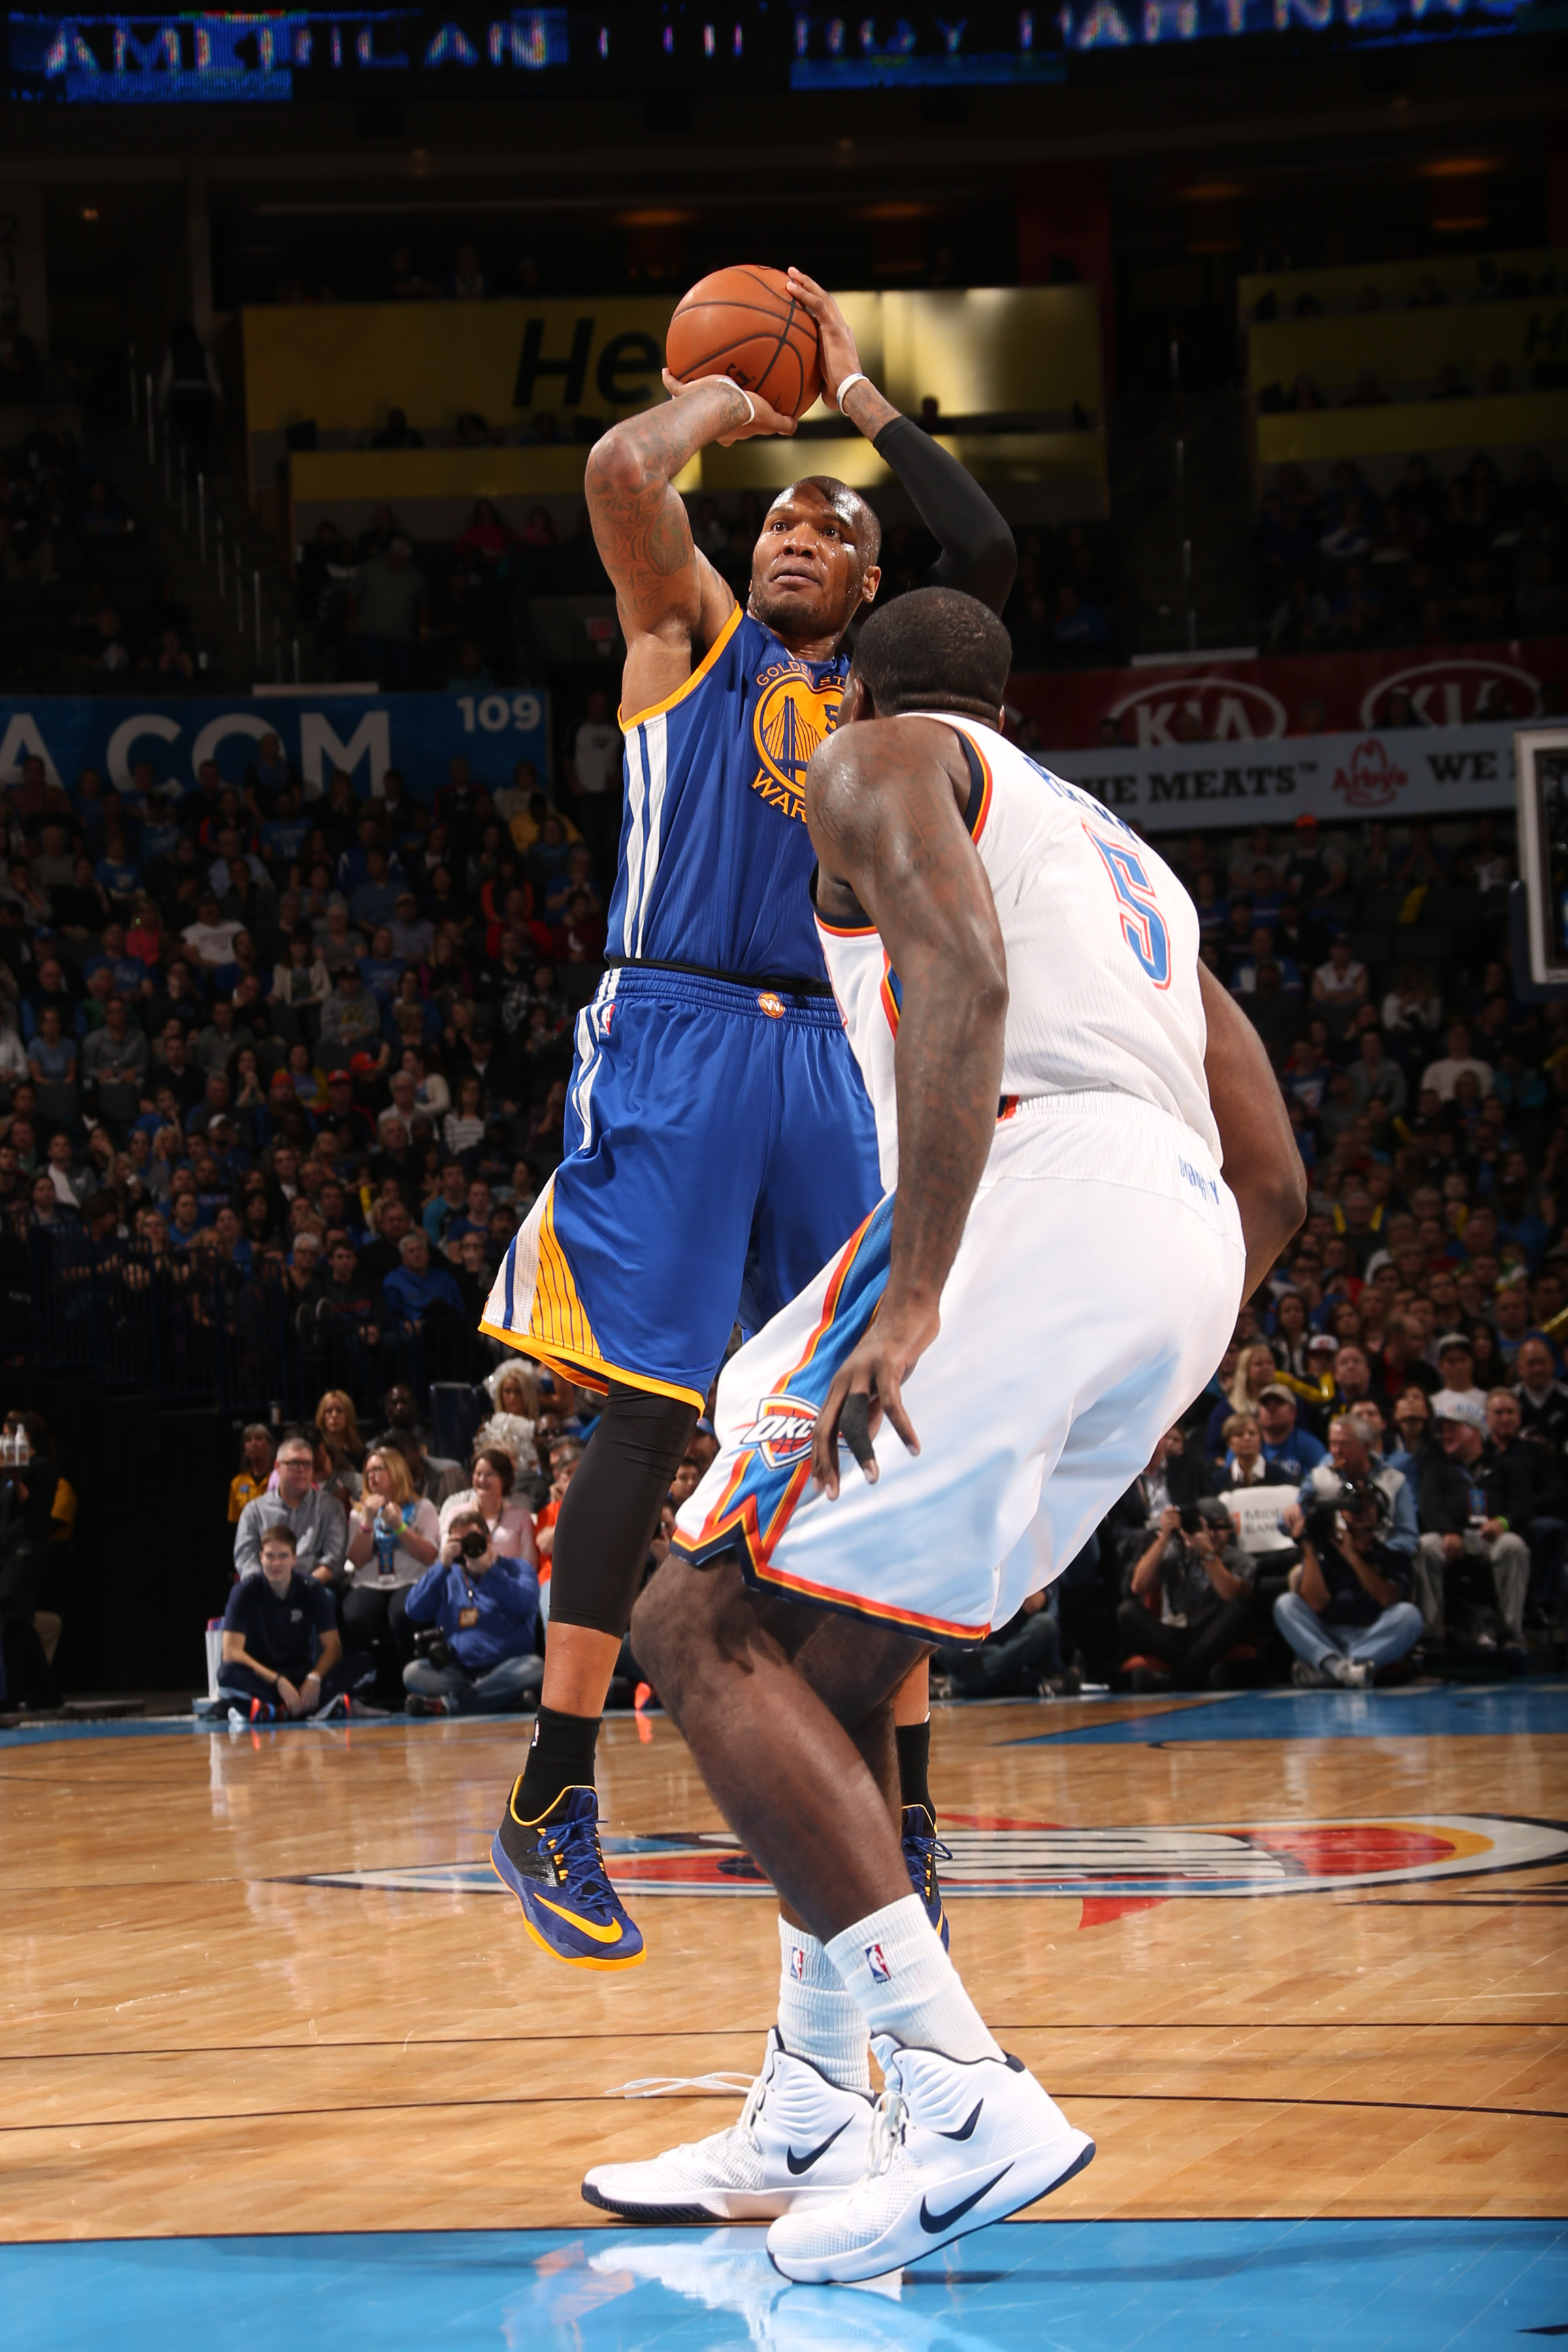 Warriors' Speights on OKC's Perkins: 'His game is terrible'